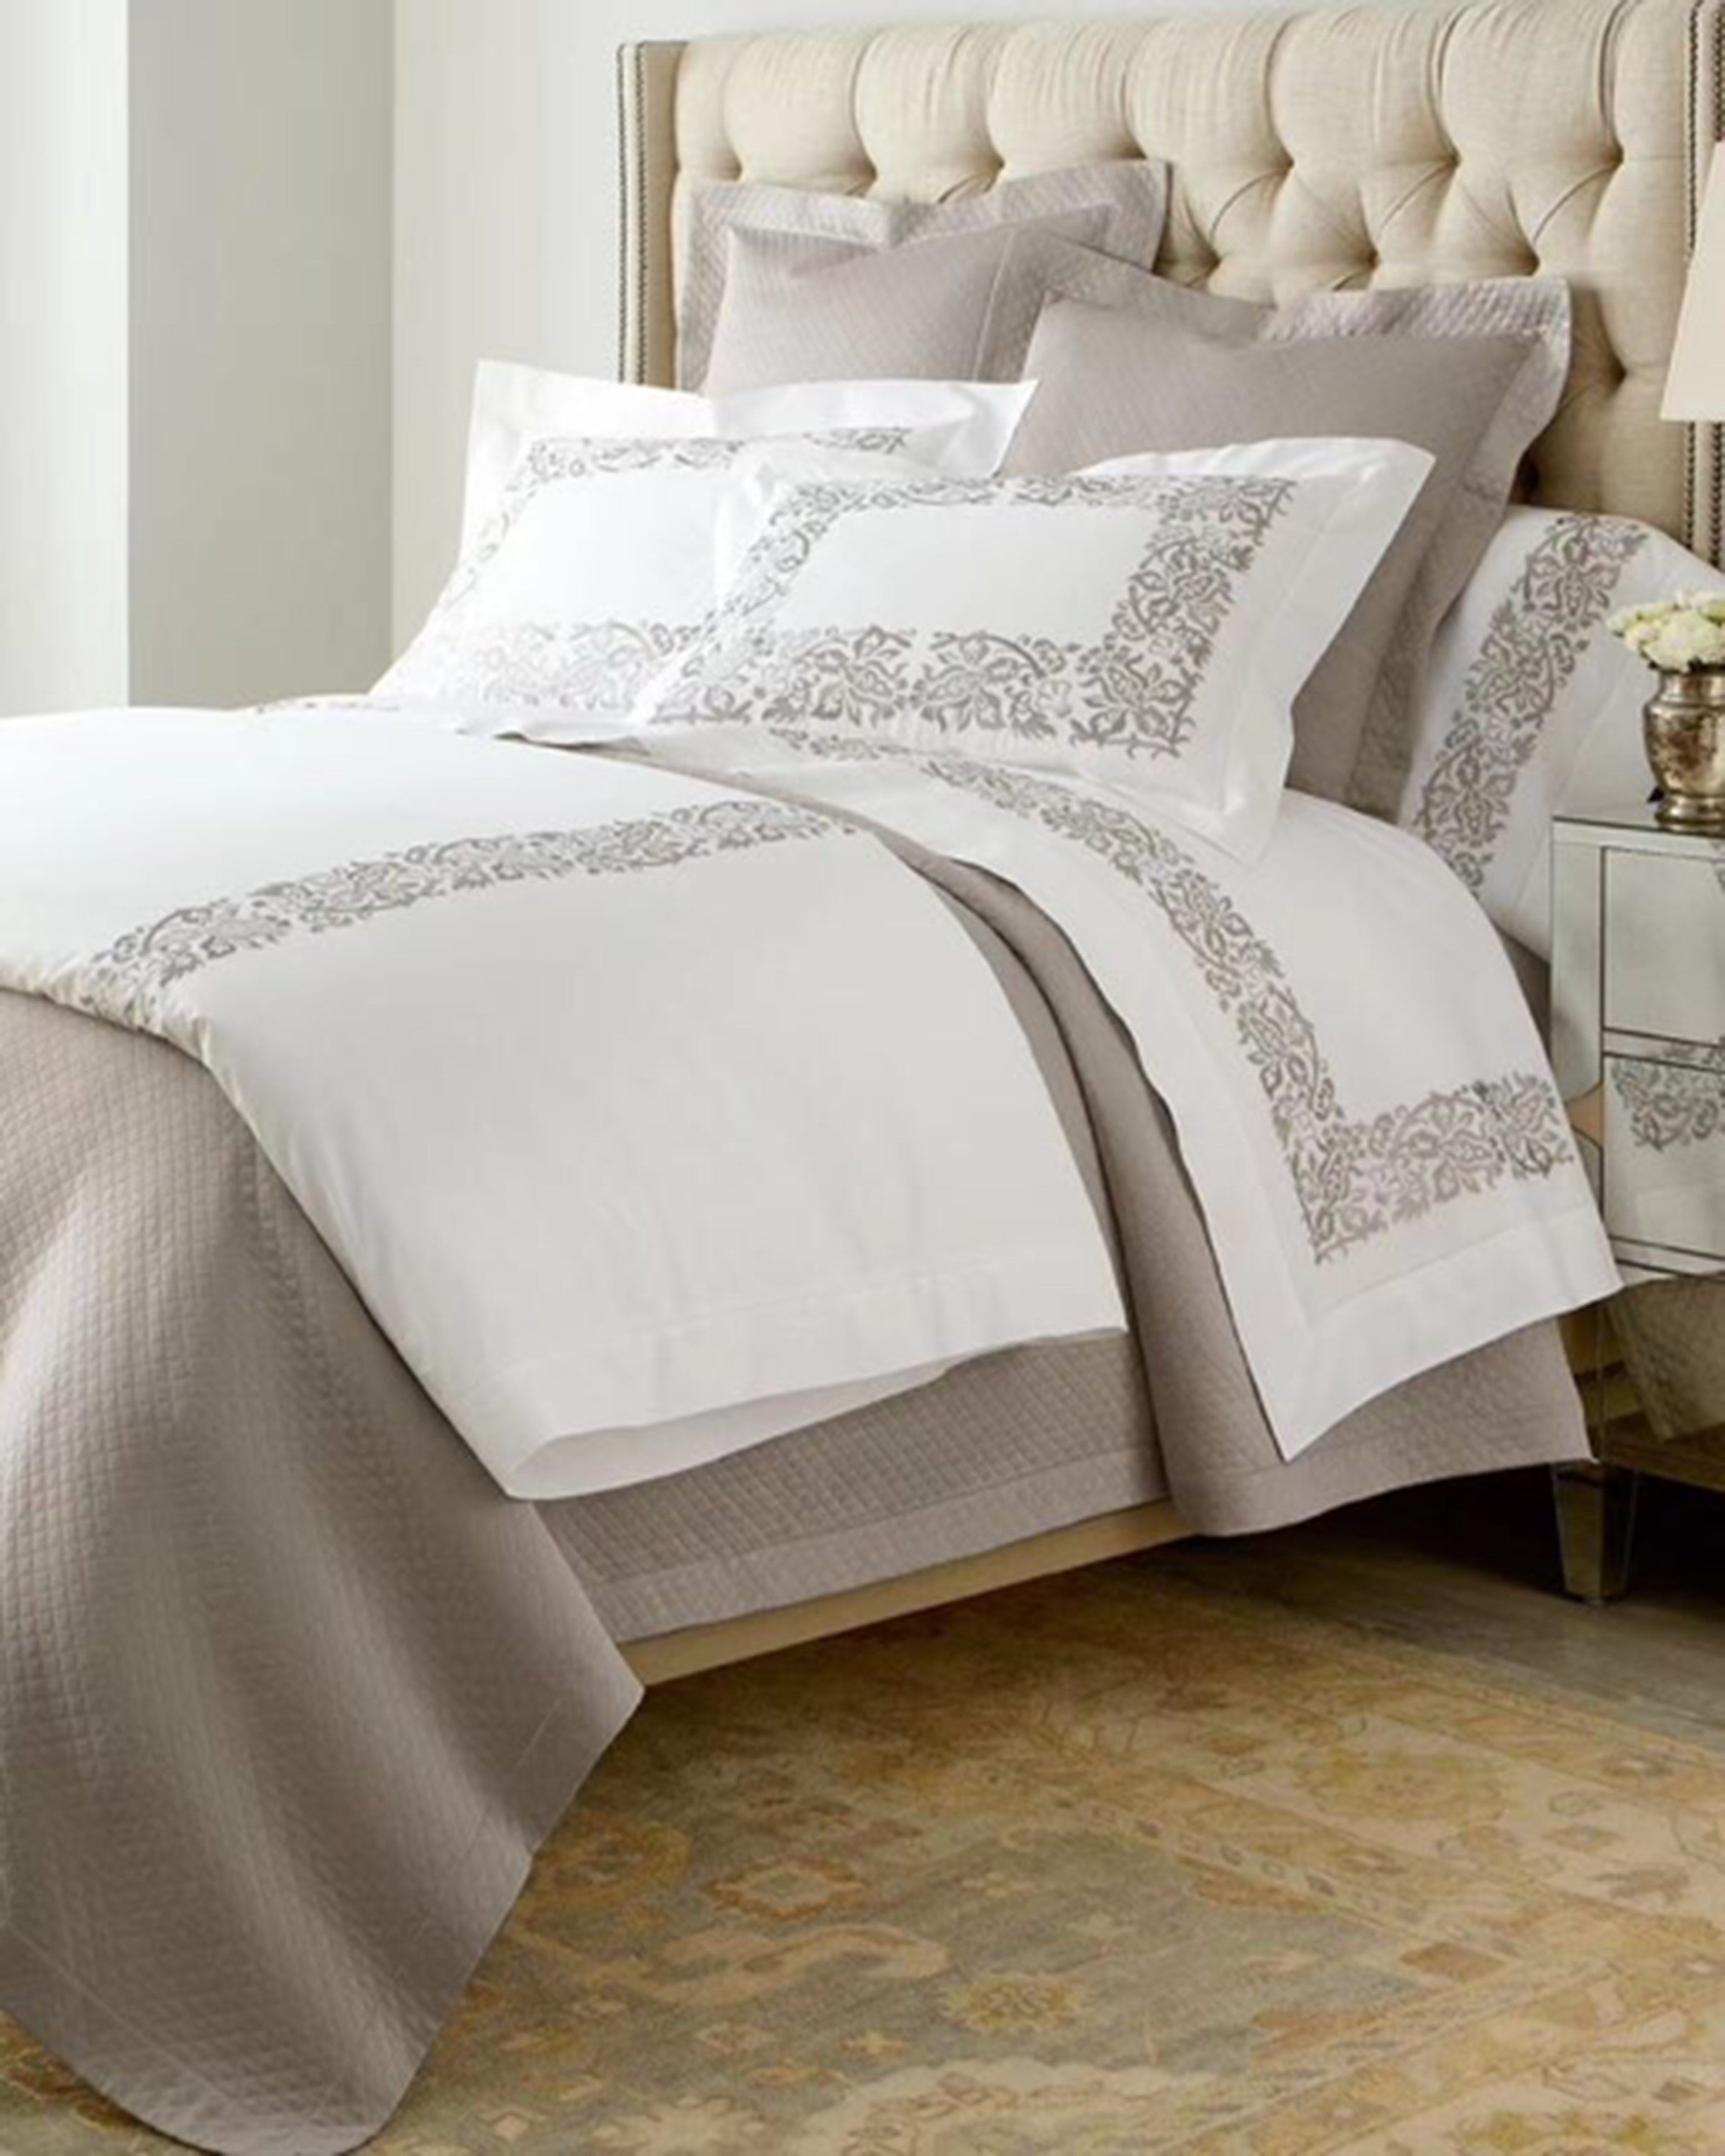 TAO BED SET ANGIE HOMES